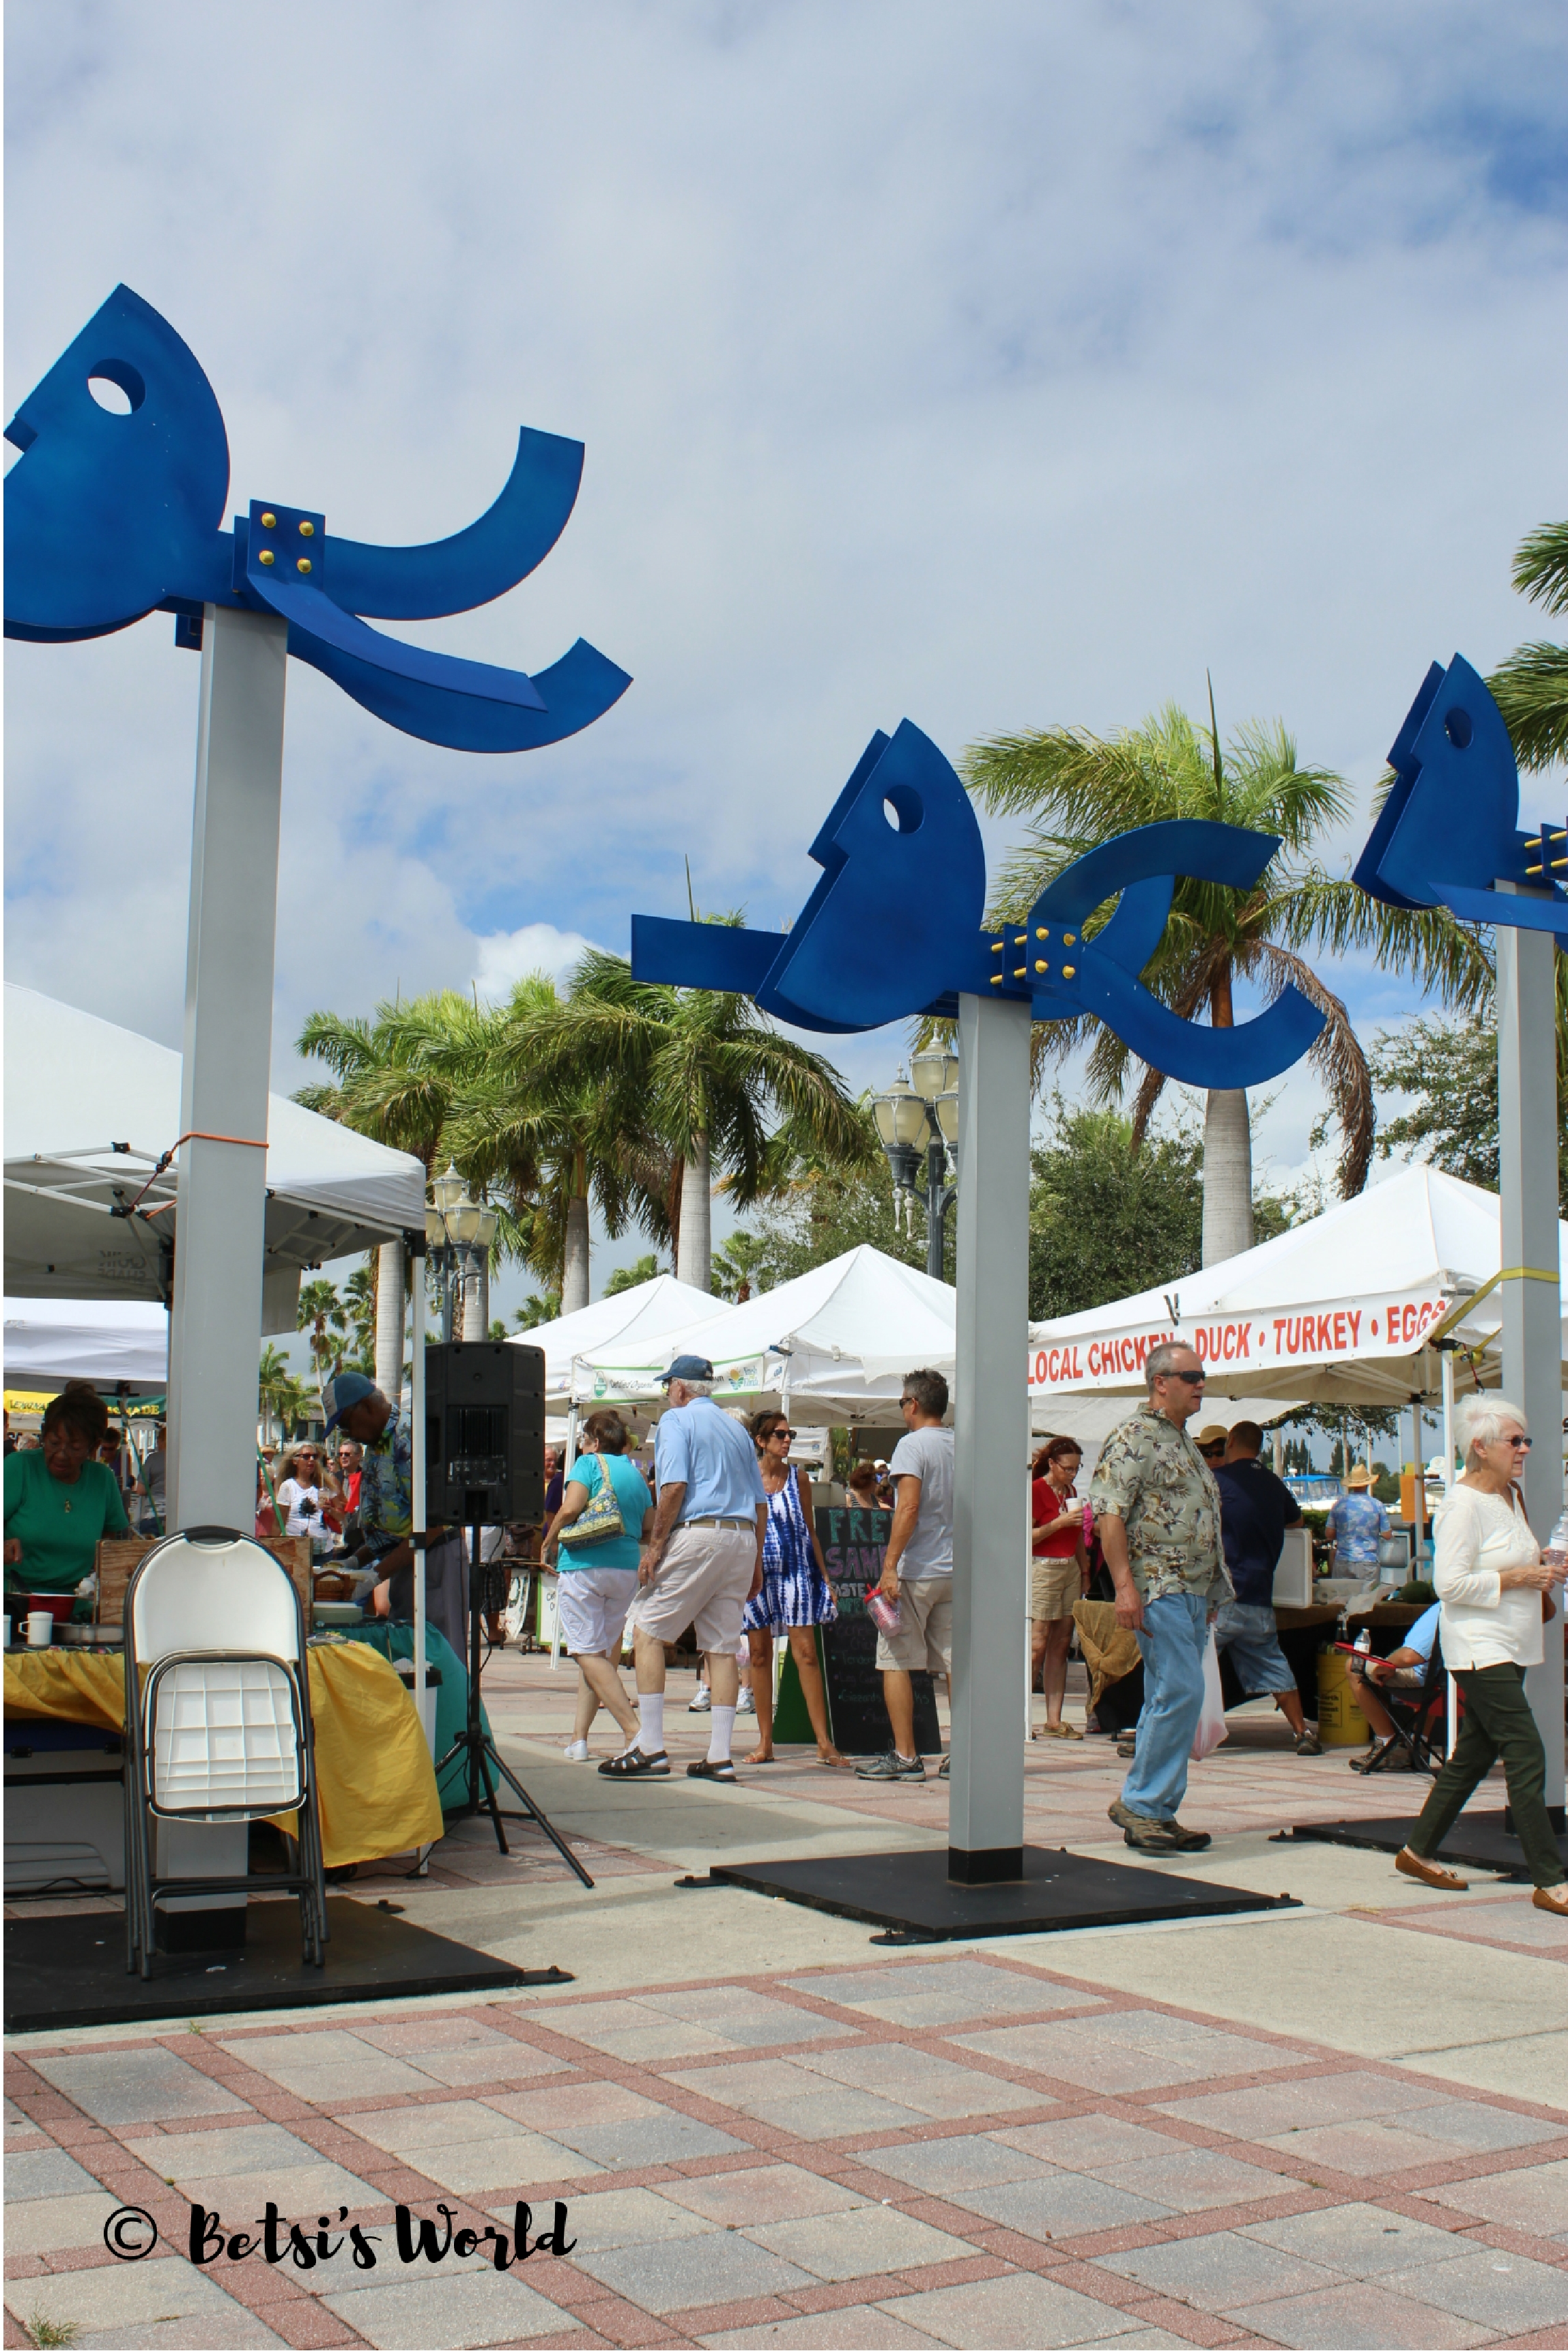 Fort Pierce Farmers' Market with artistic sculpture and produces stands selling meats and fruit.